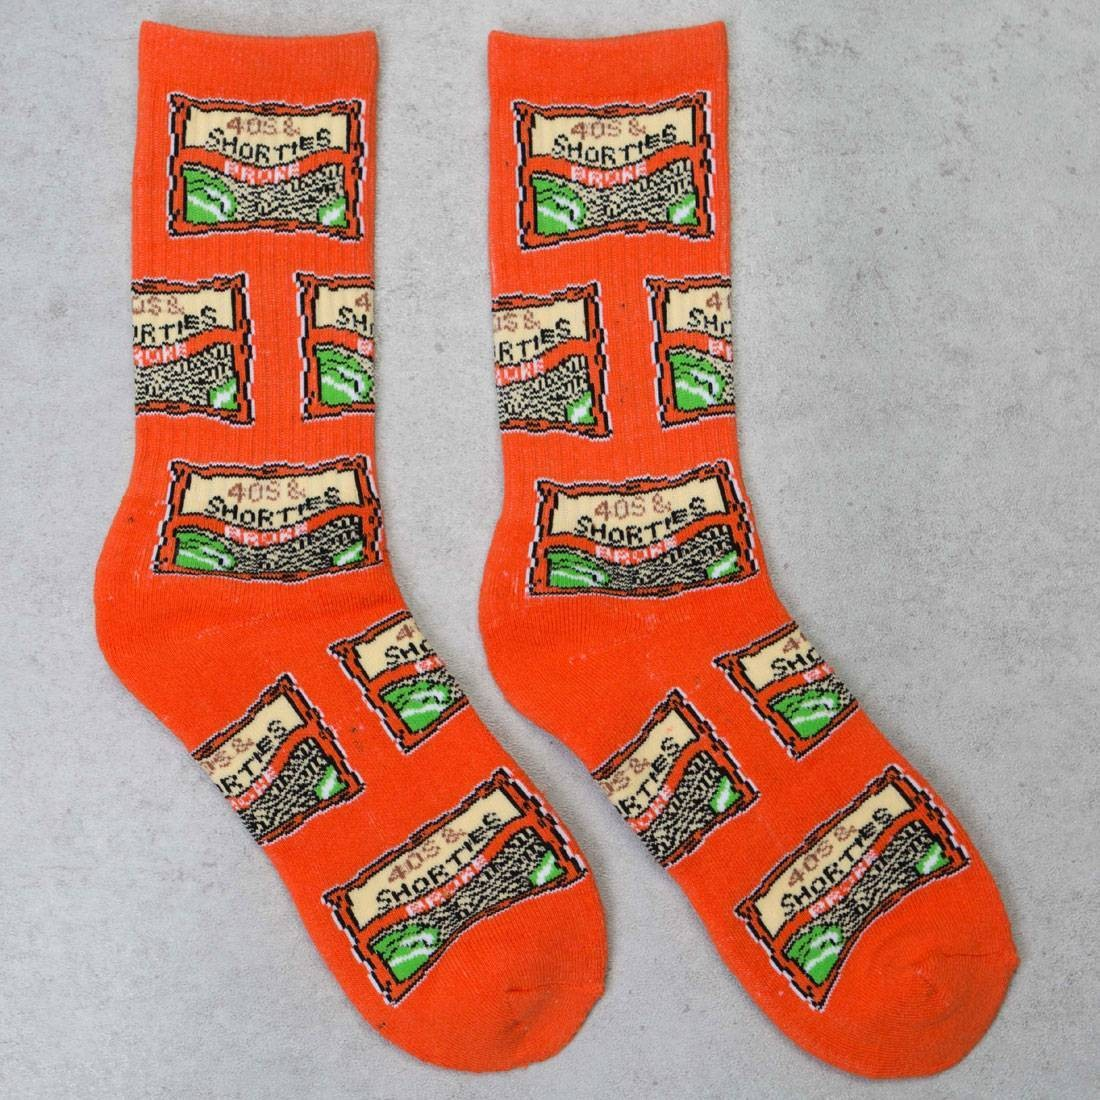 40s and Shorties Men Ramen Socks (orange)